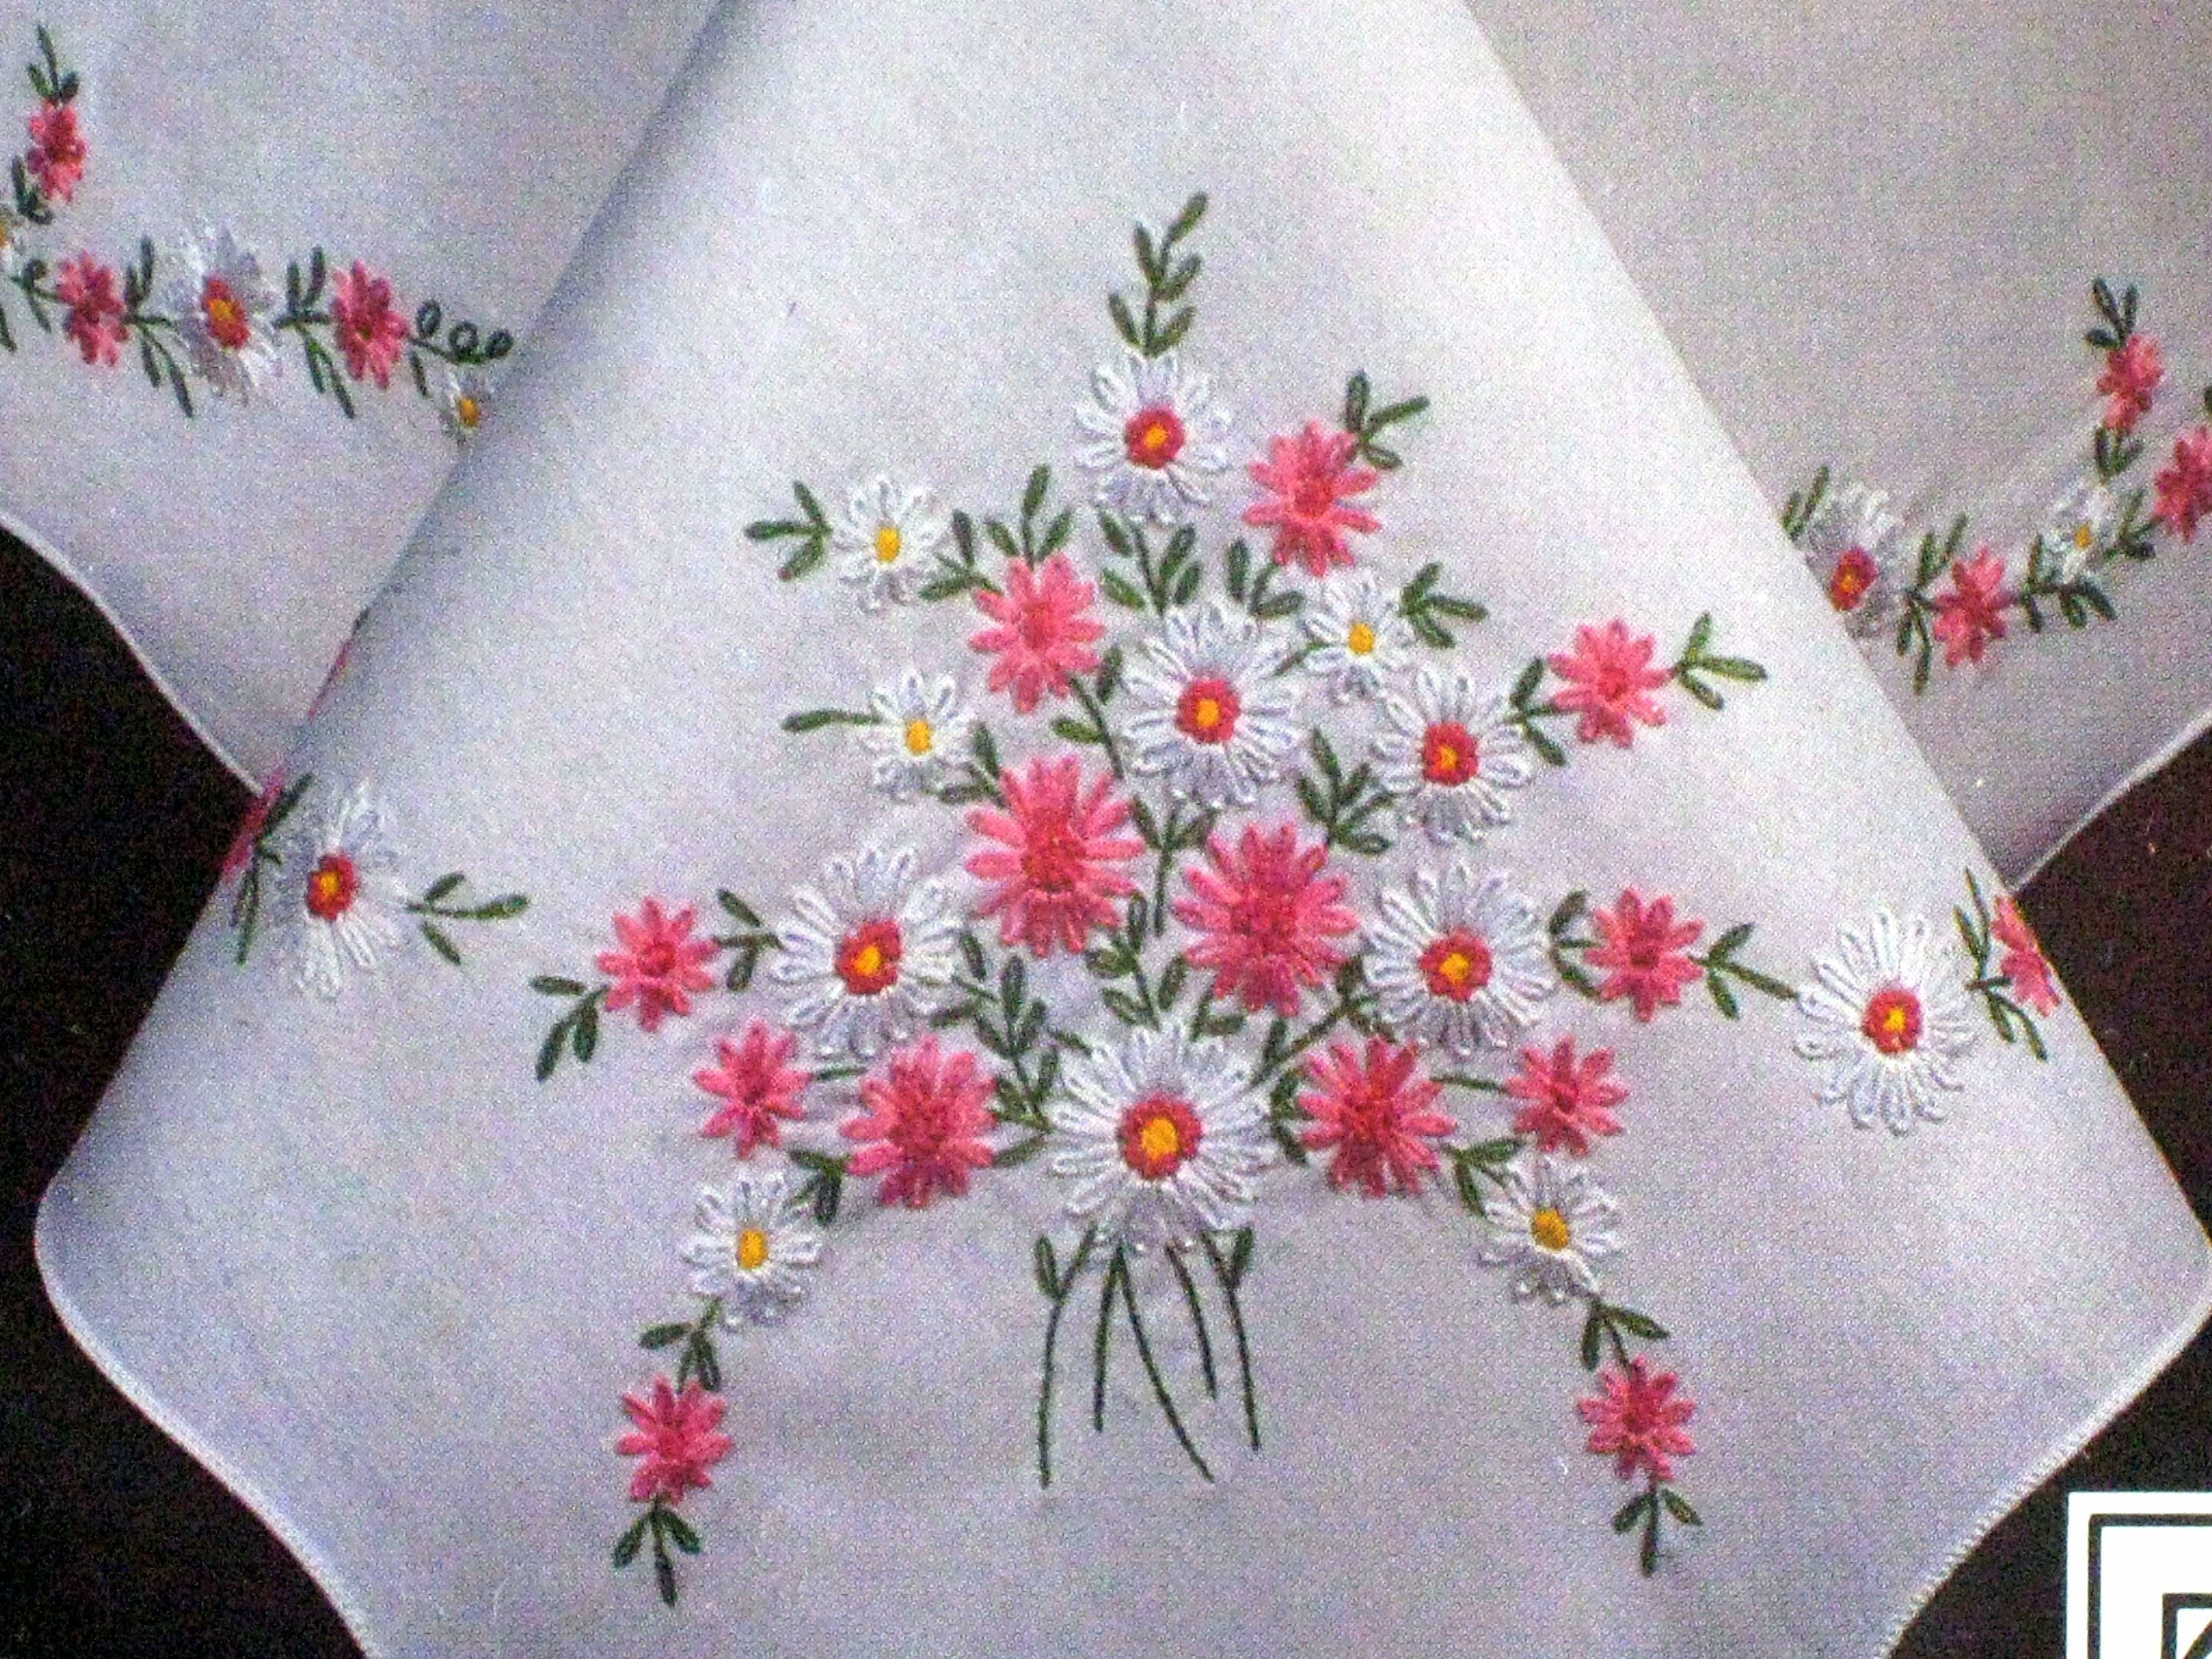 Tablecloth Stamped Cross Stitch Kit - Tobin Daisy Charm style 1400/57 - 58